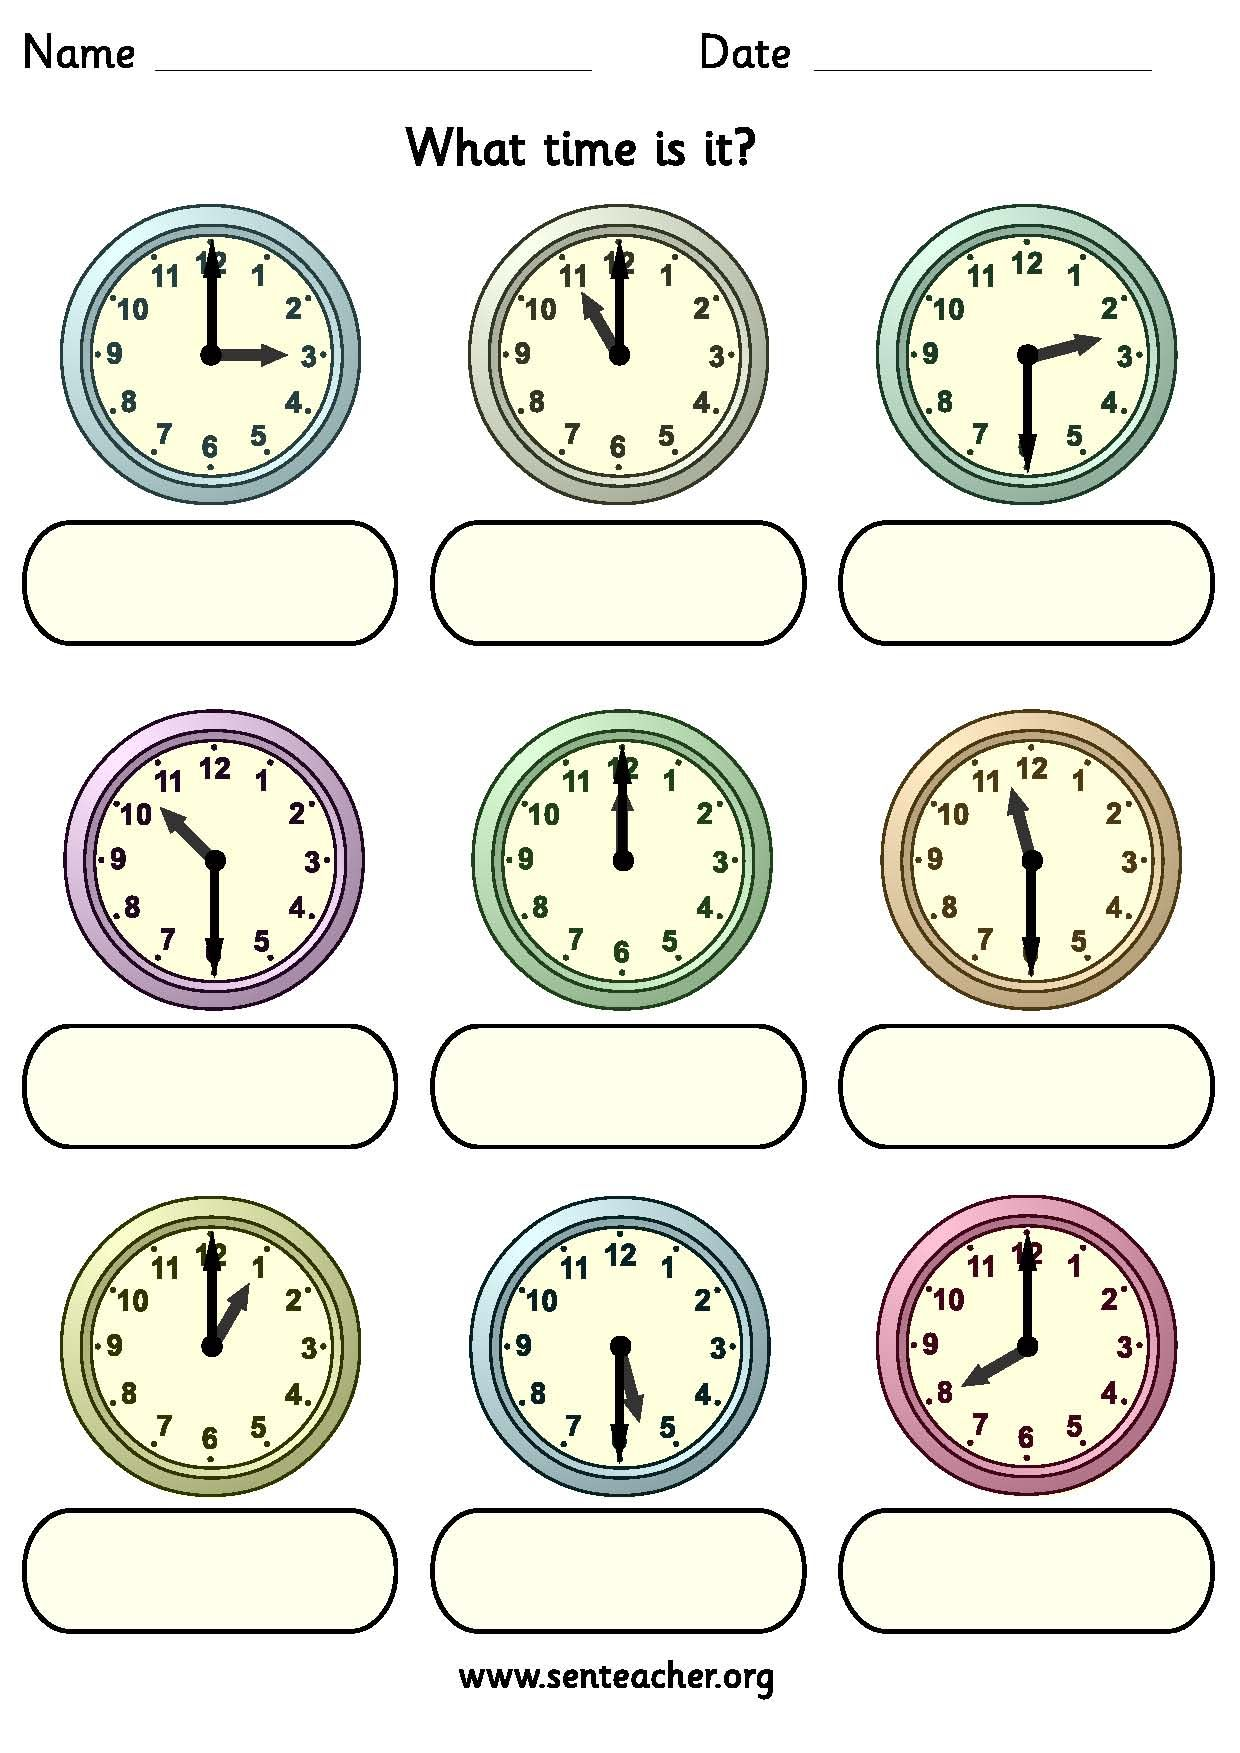 Worksheet Containing 9ogue Clocks Showing O Clock Or Half Past Times With Space To Write In